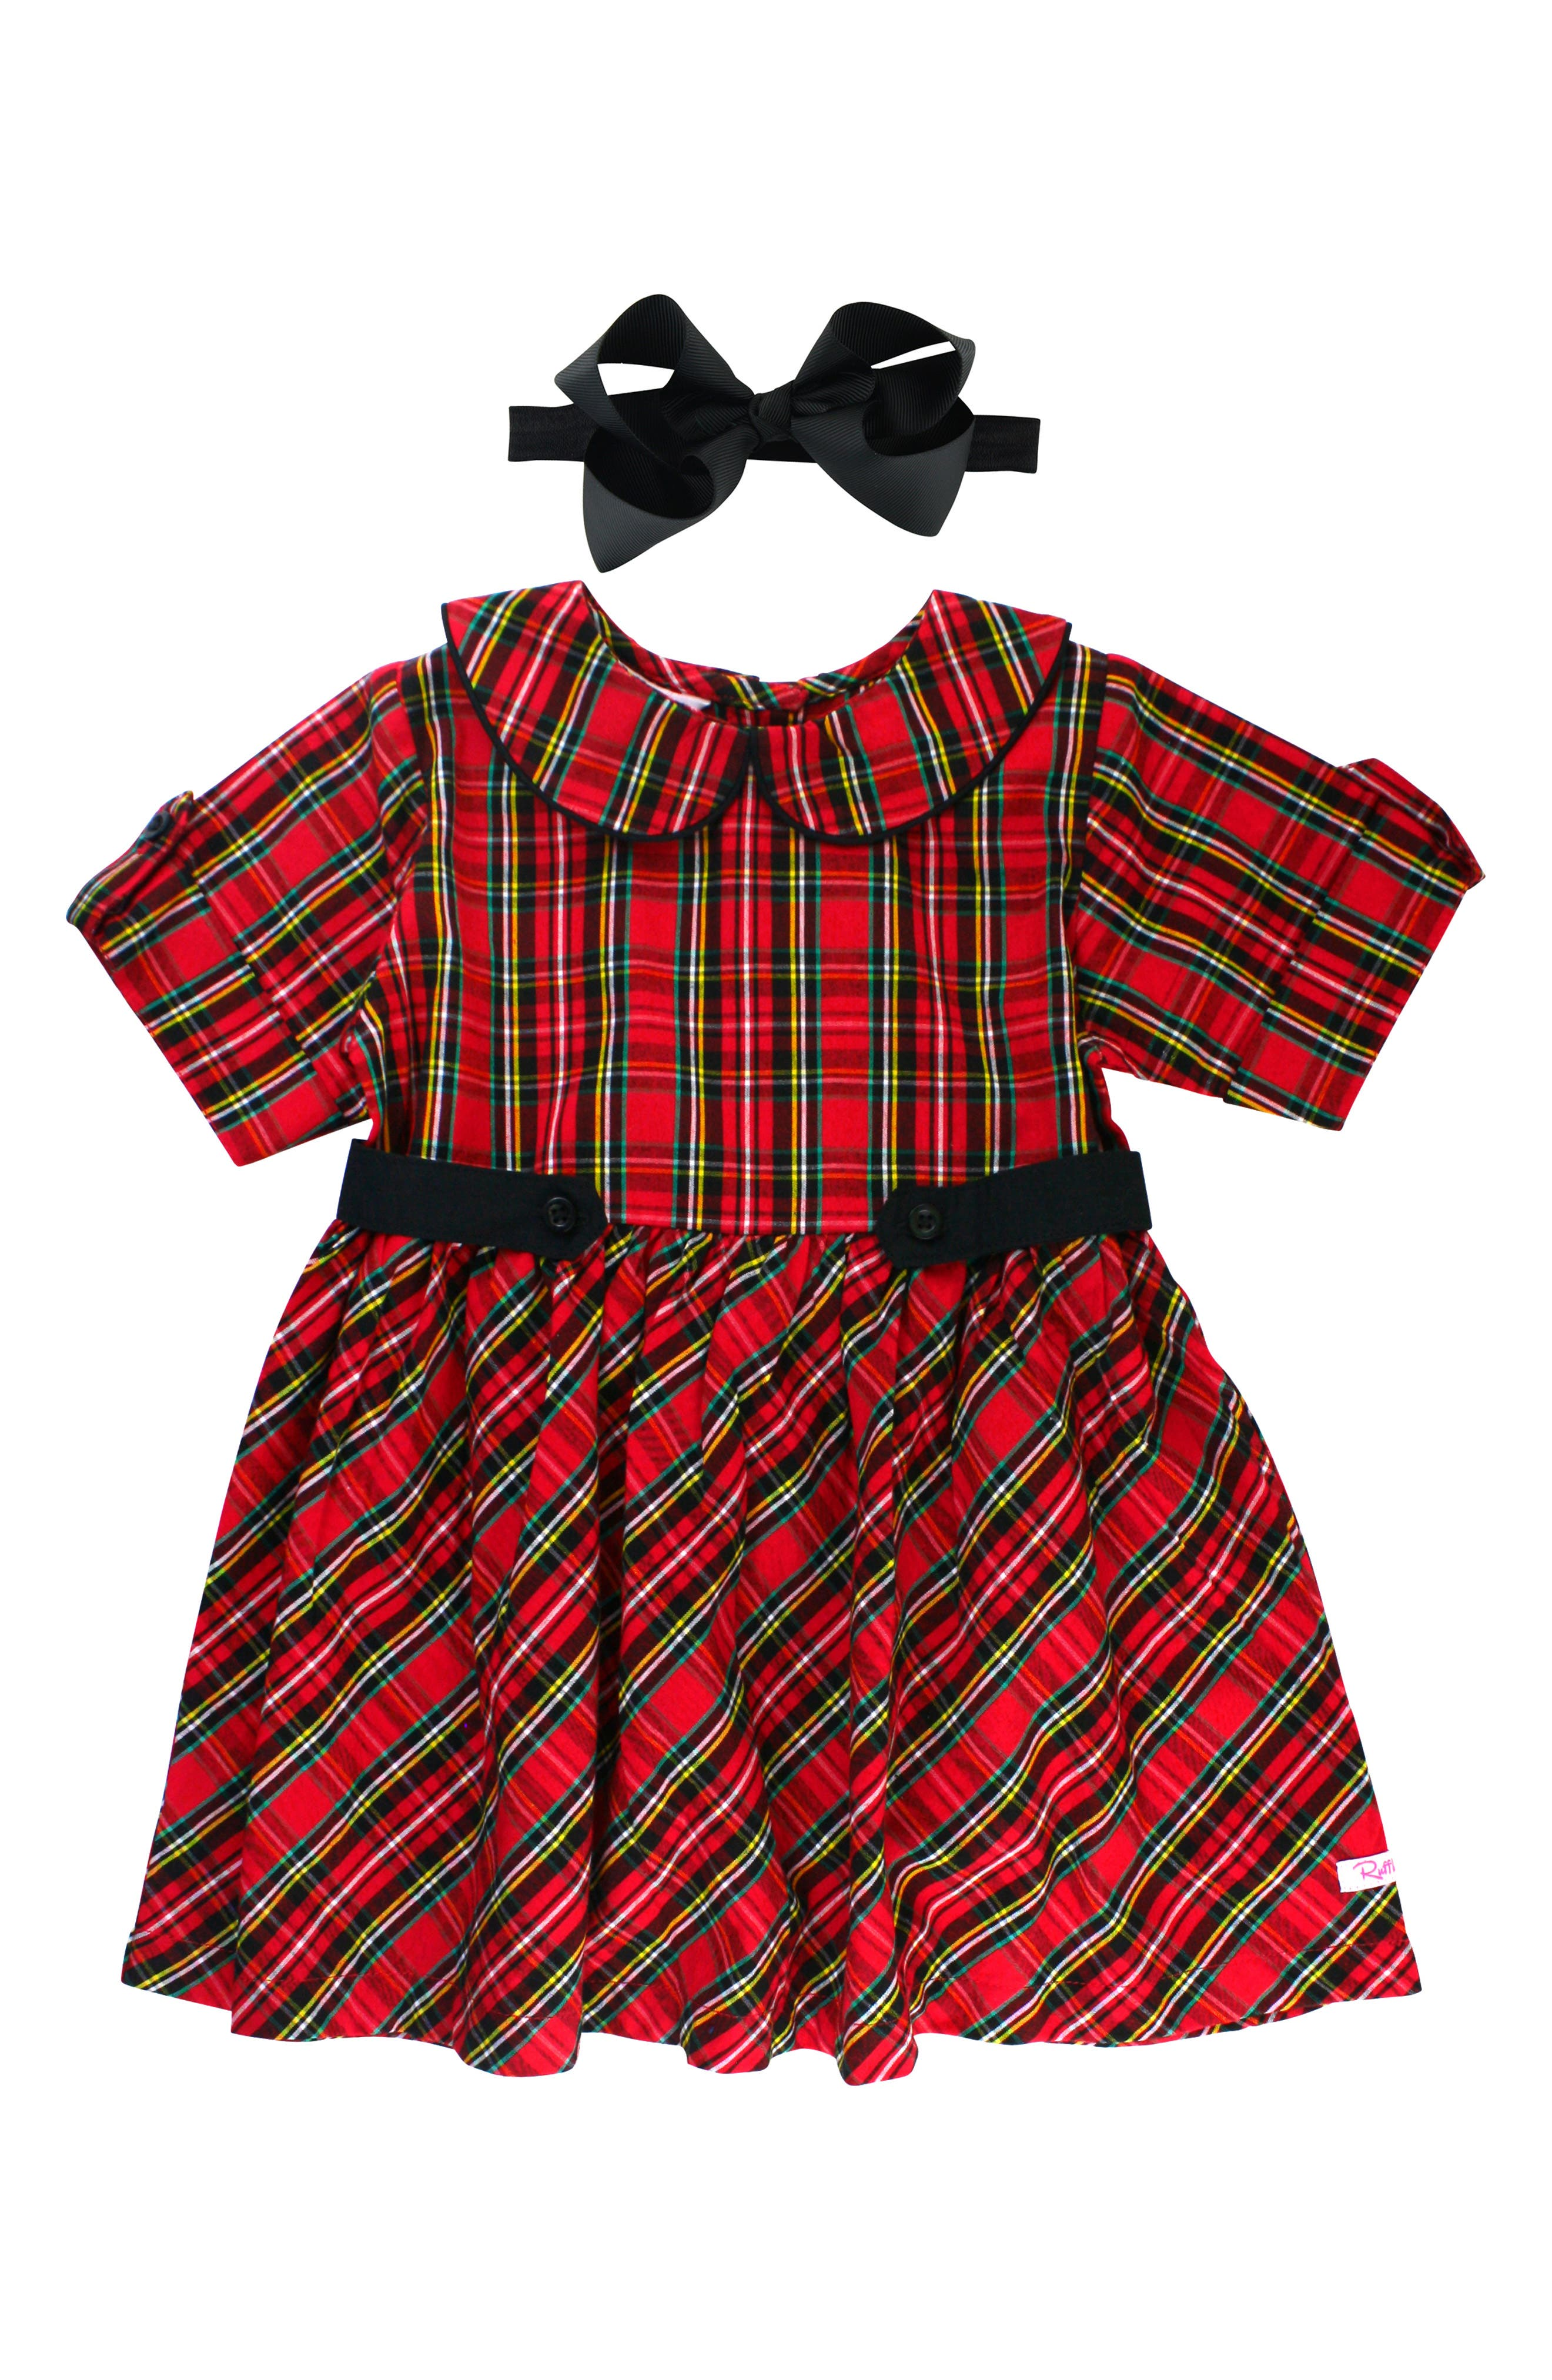 RUFFLEBUTTS Peter Pan Dress & Bow Head Band Set, Main, color, RED